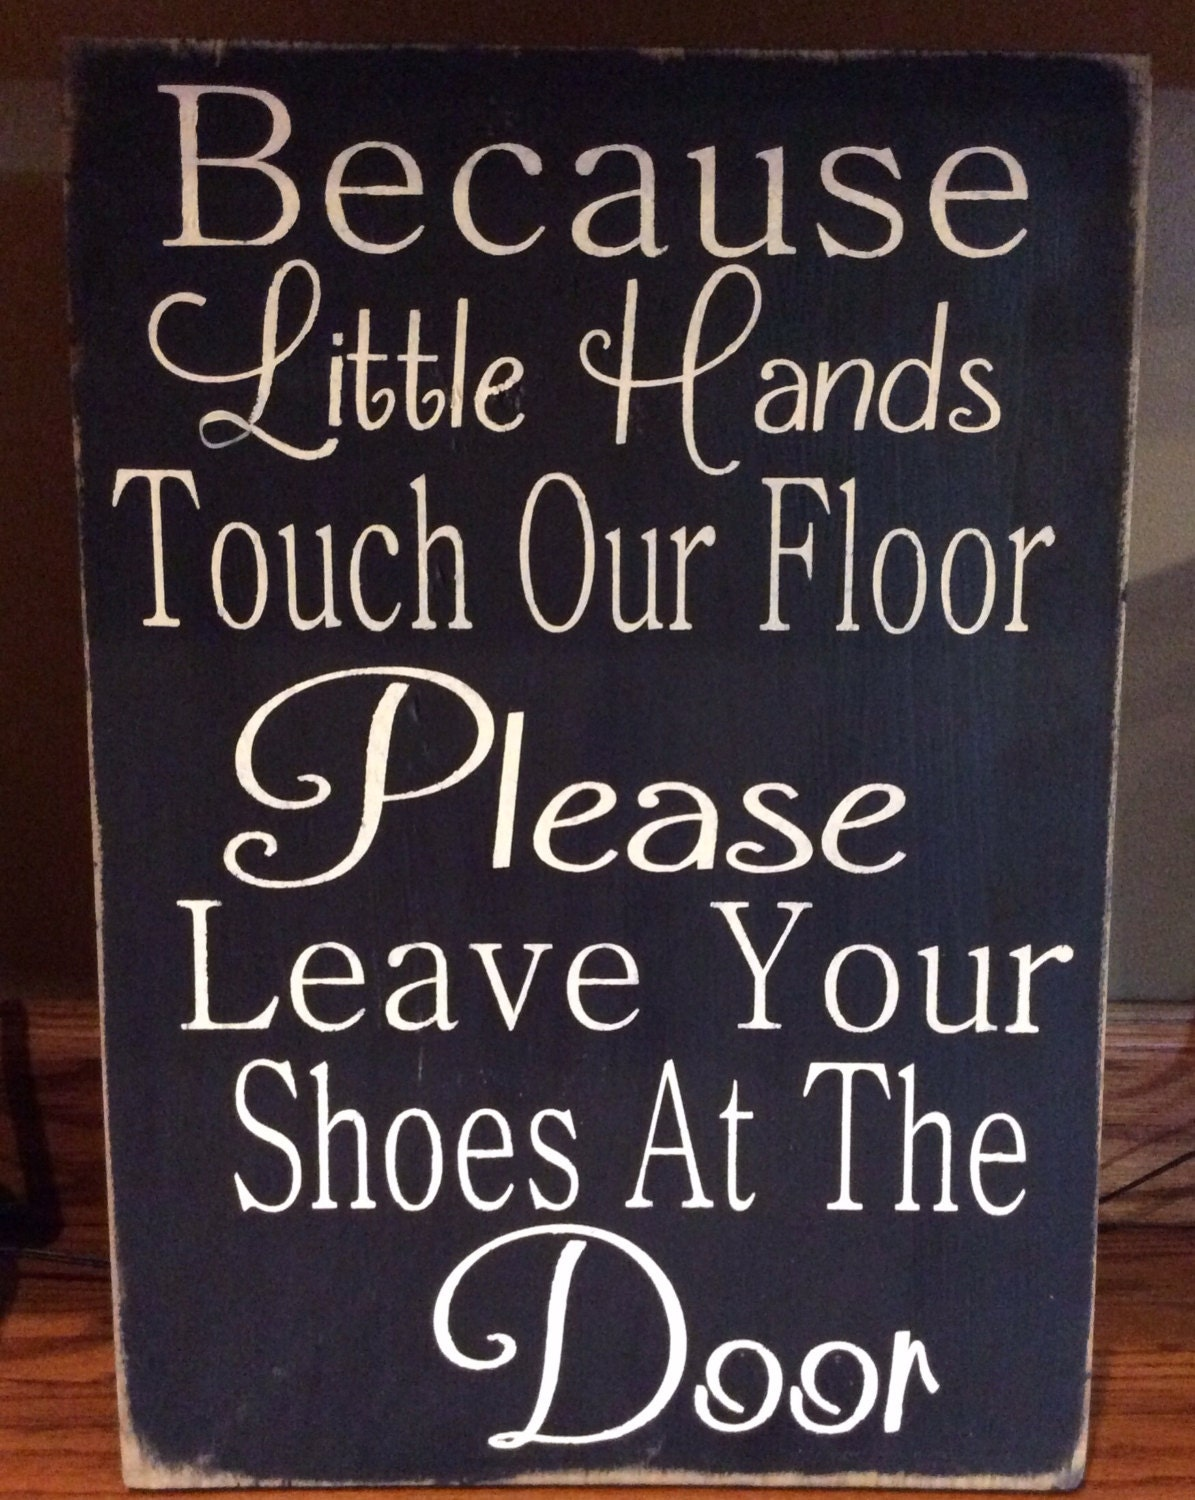 Because little hands touch the floor leave by stonevalleysigns Taking shoes off in house etiquette